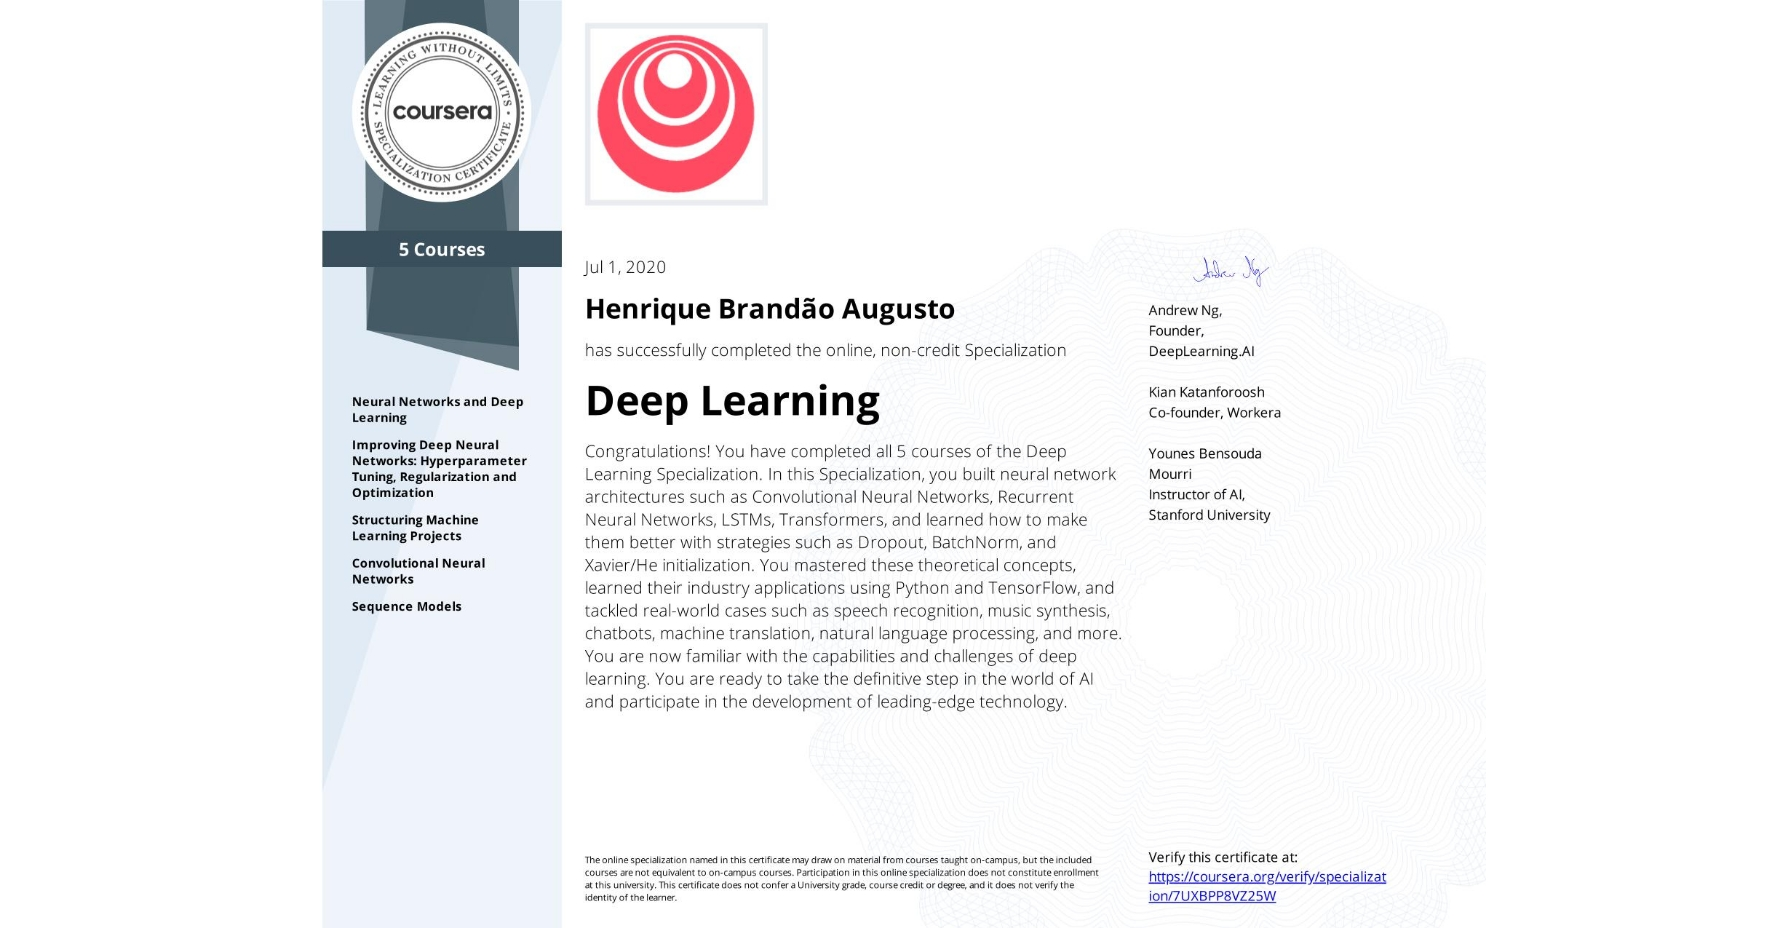 View certificate for Henrique Brandão Augusto, Deep Learning, offered through Coursera. The Deep Learning Specialization is designed to prepare learners to participate in the development of cutting-edge AI technology, and to understand the capability, the challenges, and the consequences of the rise of deep learning. Through five interconnected courses, learners develop a profound knowledge of the hottest AI algorithms, mastering deep learning from its foundations (neural networks) to its industry applications (Computer Vision, Natural Language Processing, Speech Recognition, etc.).